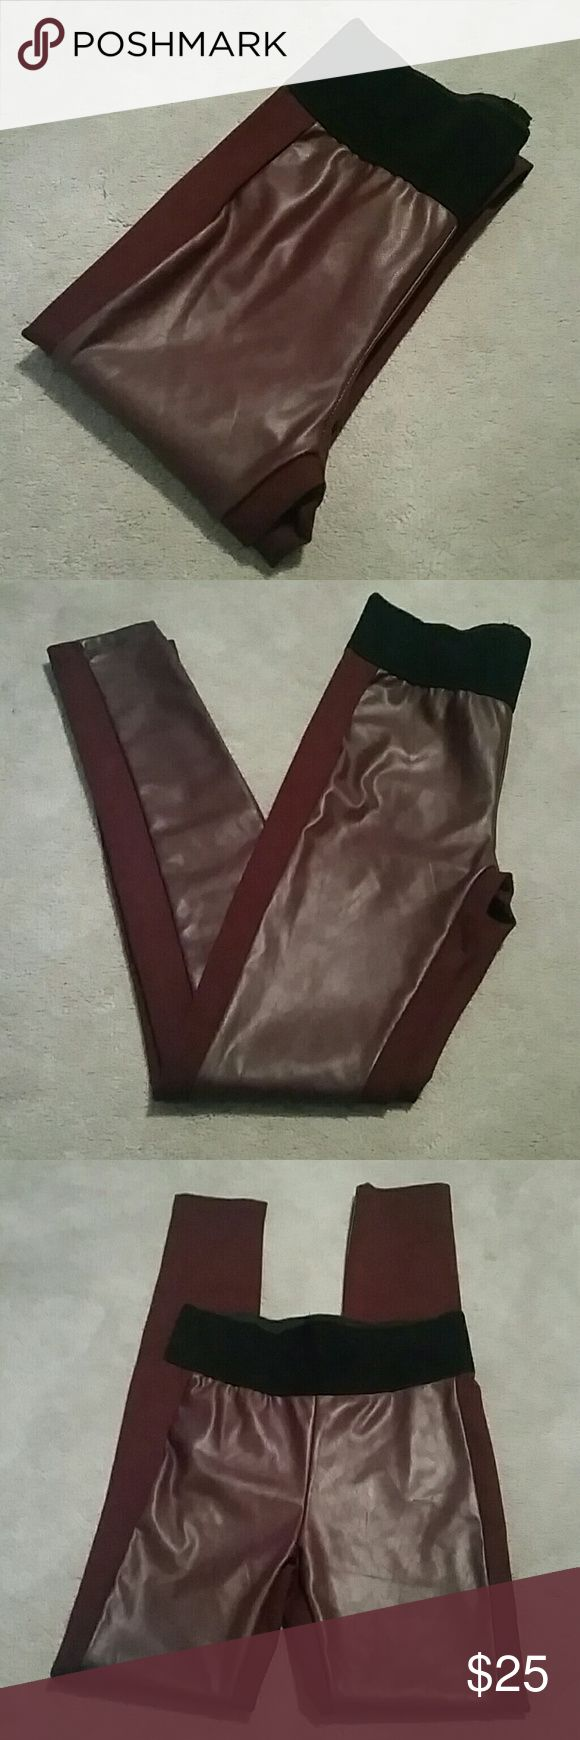 "NWOT Forever 21 Oxblood Leggings sz XS Brand new, never worn, no tags from a smoke and pet free home  High waisted, thick waistband, oxblood maroon leggings with faux leather panel down the front, not see through 68% rayon / 27% nylon /5% spandex  Approx Measurements : Waist 13"" Rise 10.5"" Inseam 29"" Forever 21 Pants Leggings"